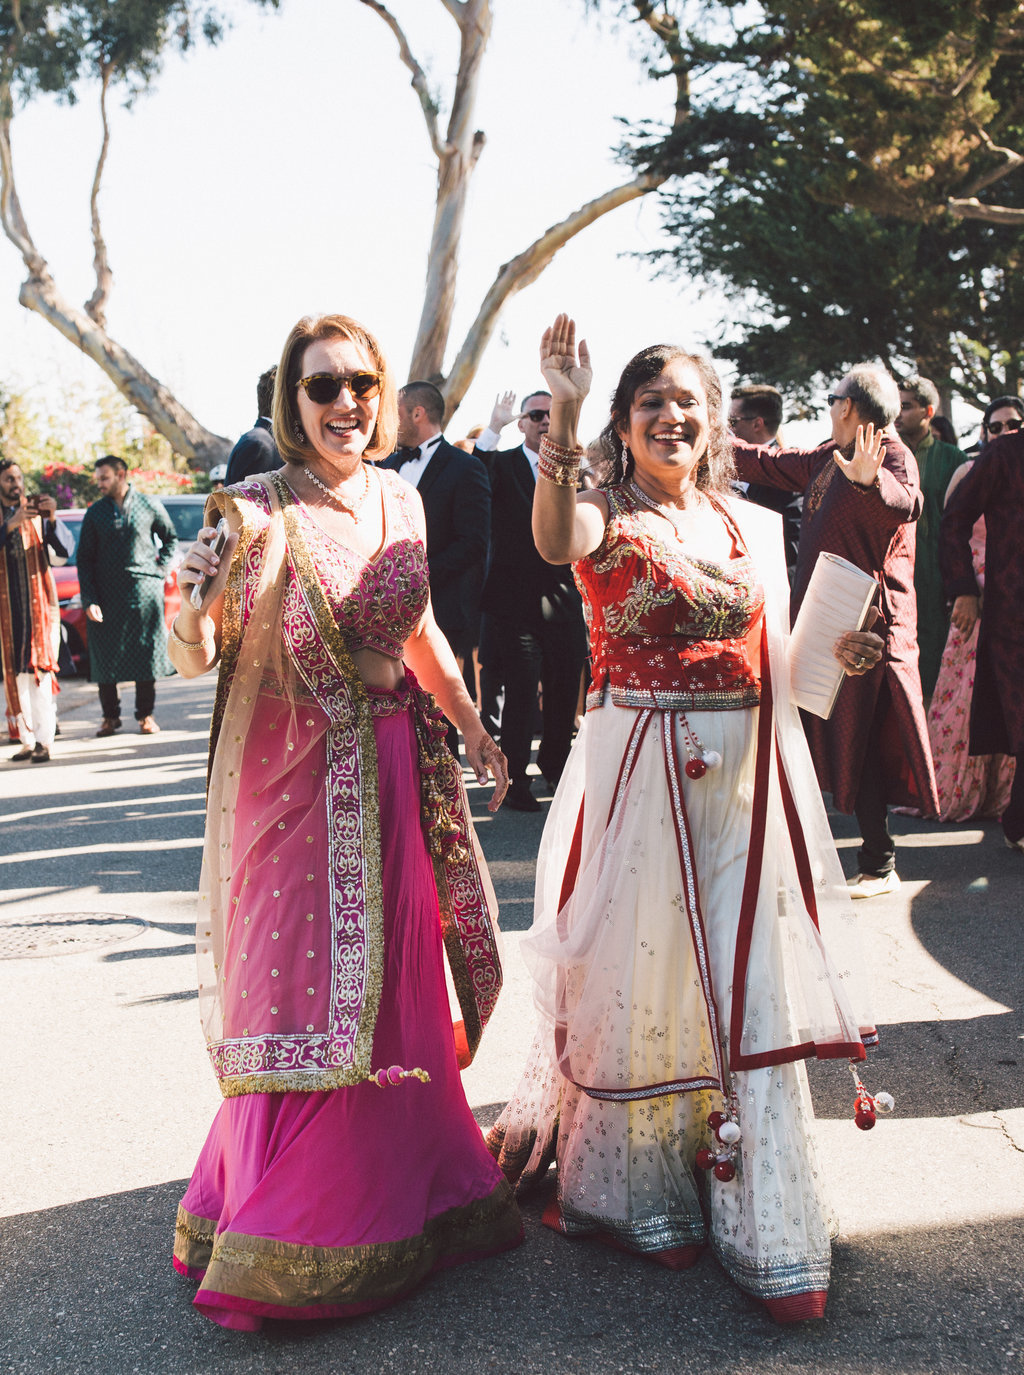 Bharat parade at blended Indian and Christian tradition wedding at Butterfly Lane Estate in Montecito